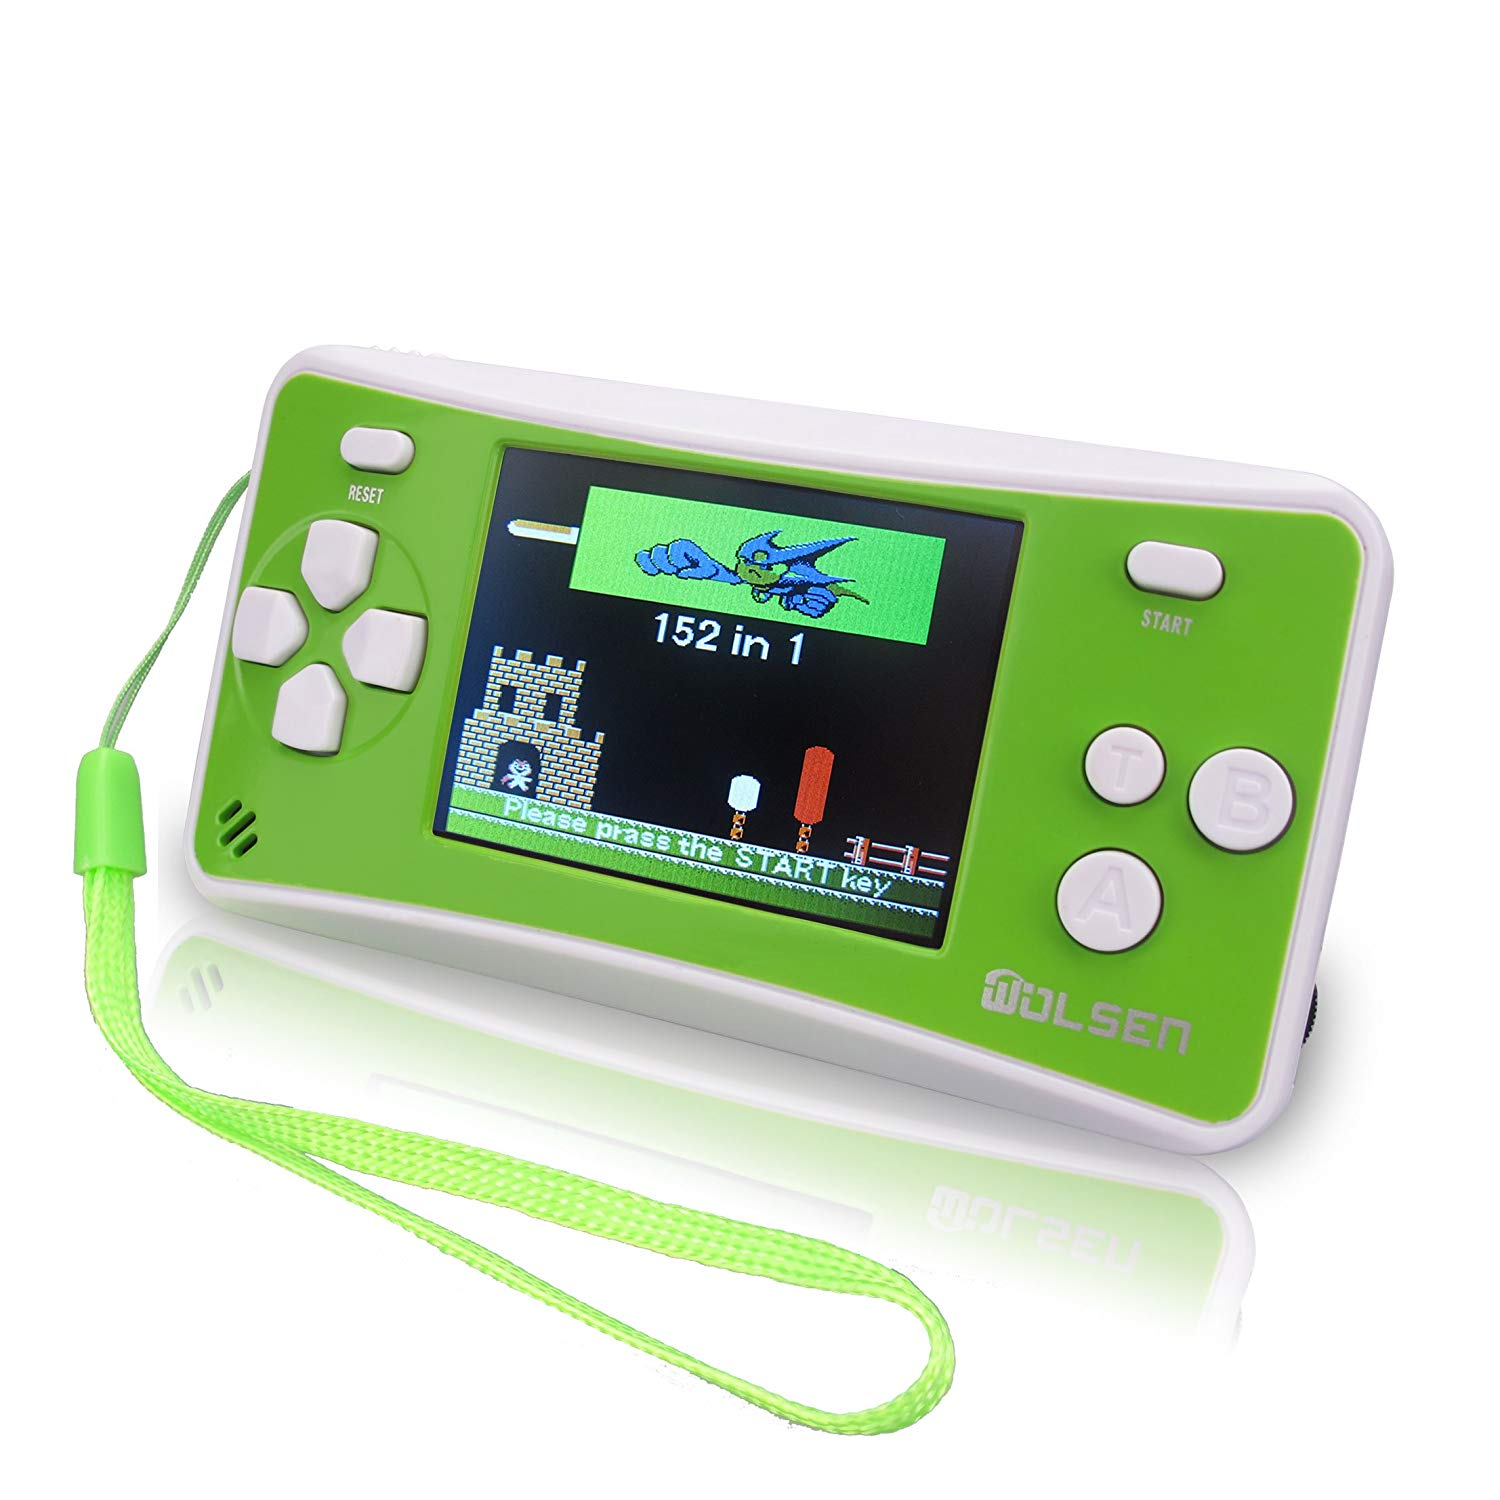 "WOLSEN 2.5"" LCD Portable Handheld Game Console Speaker (Green+ White) (3 X AAA) 152 in 1 Games"